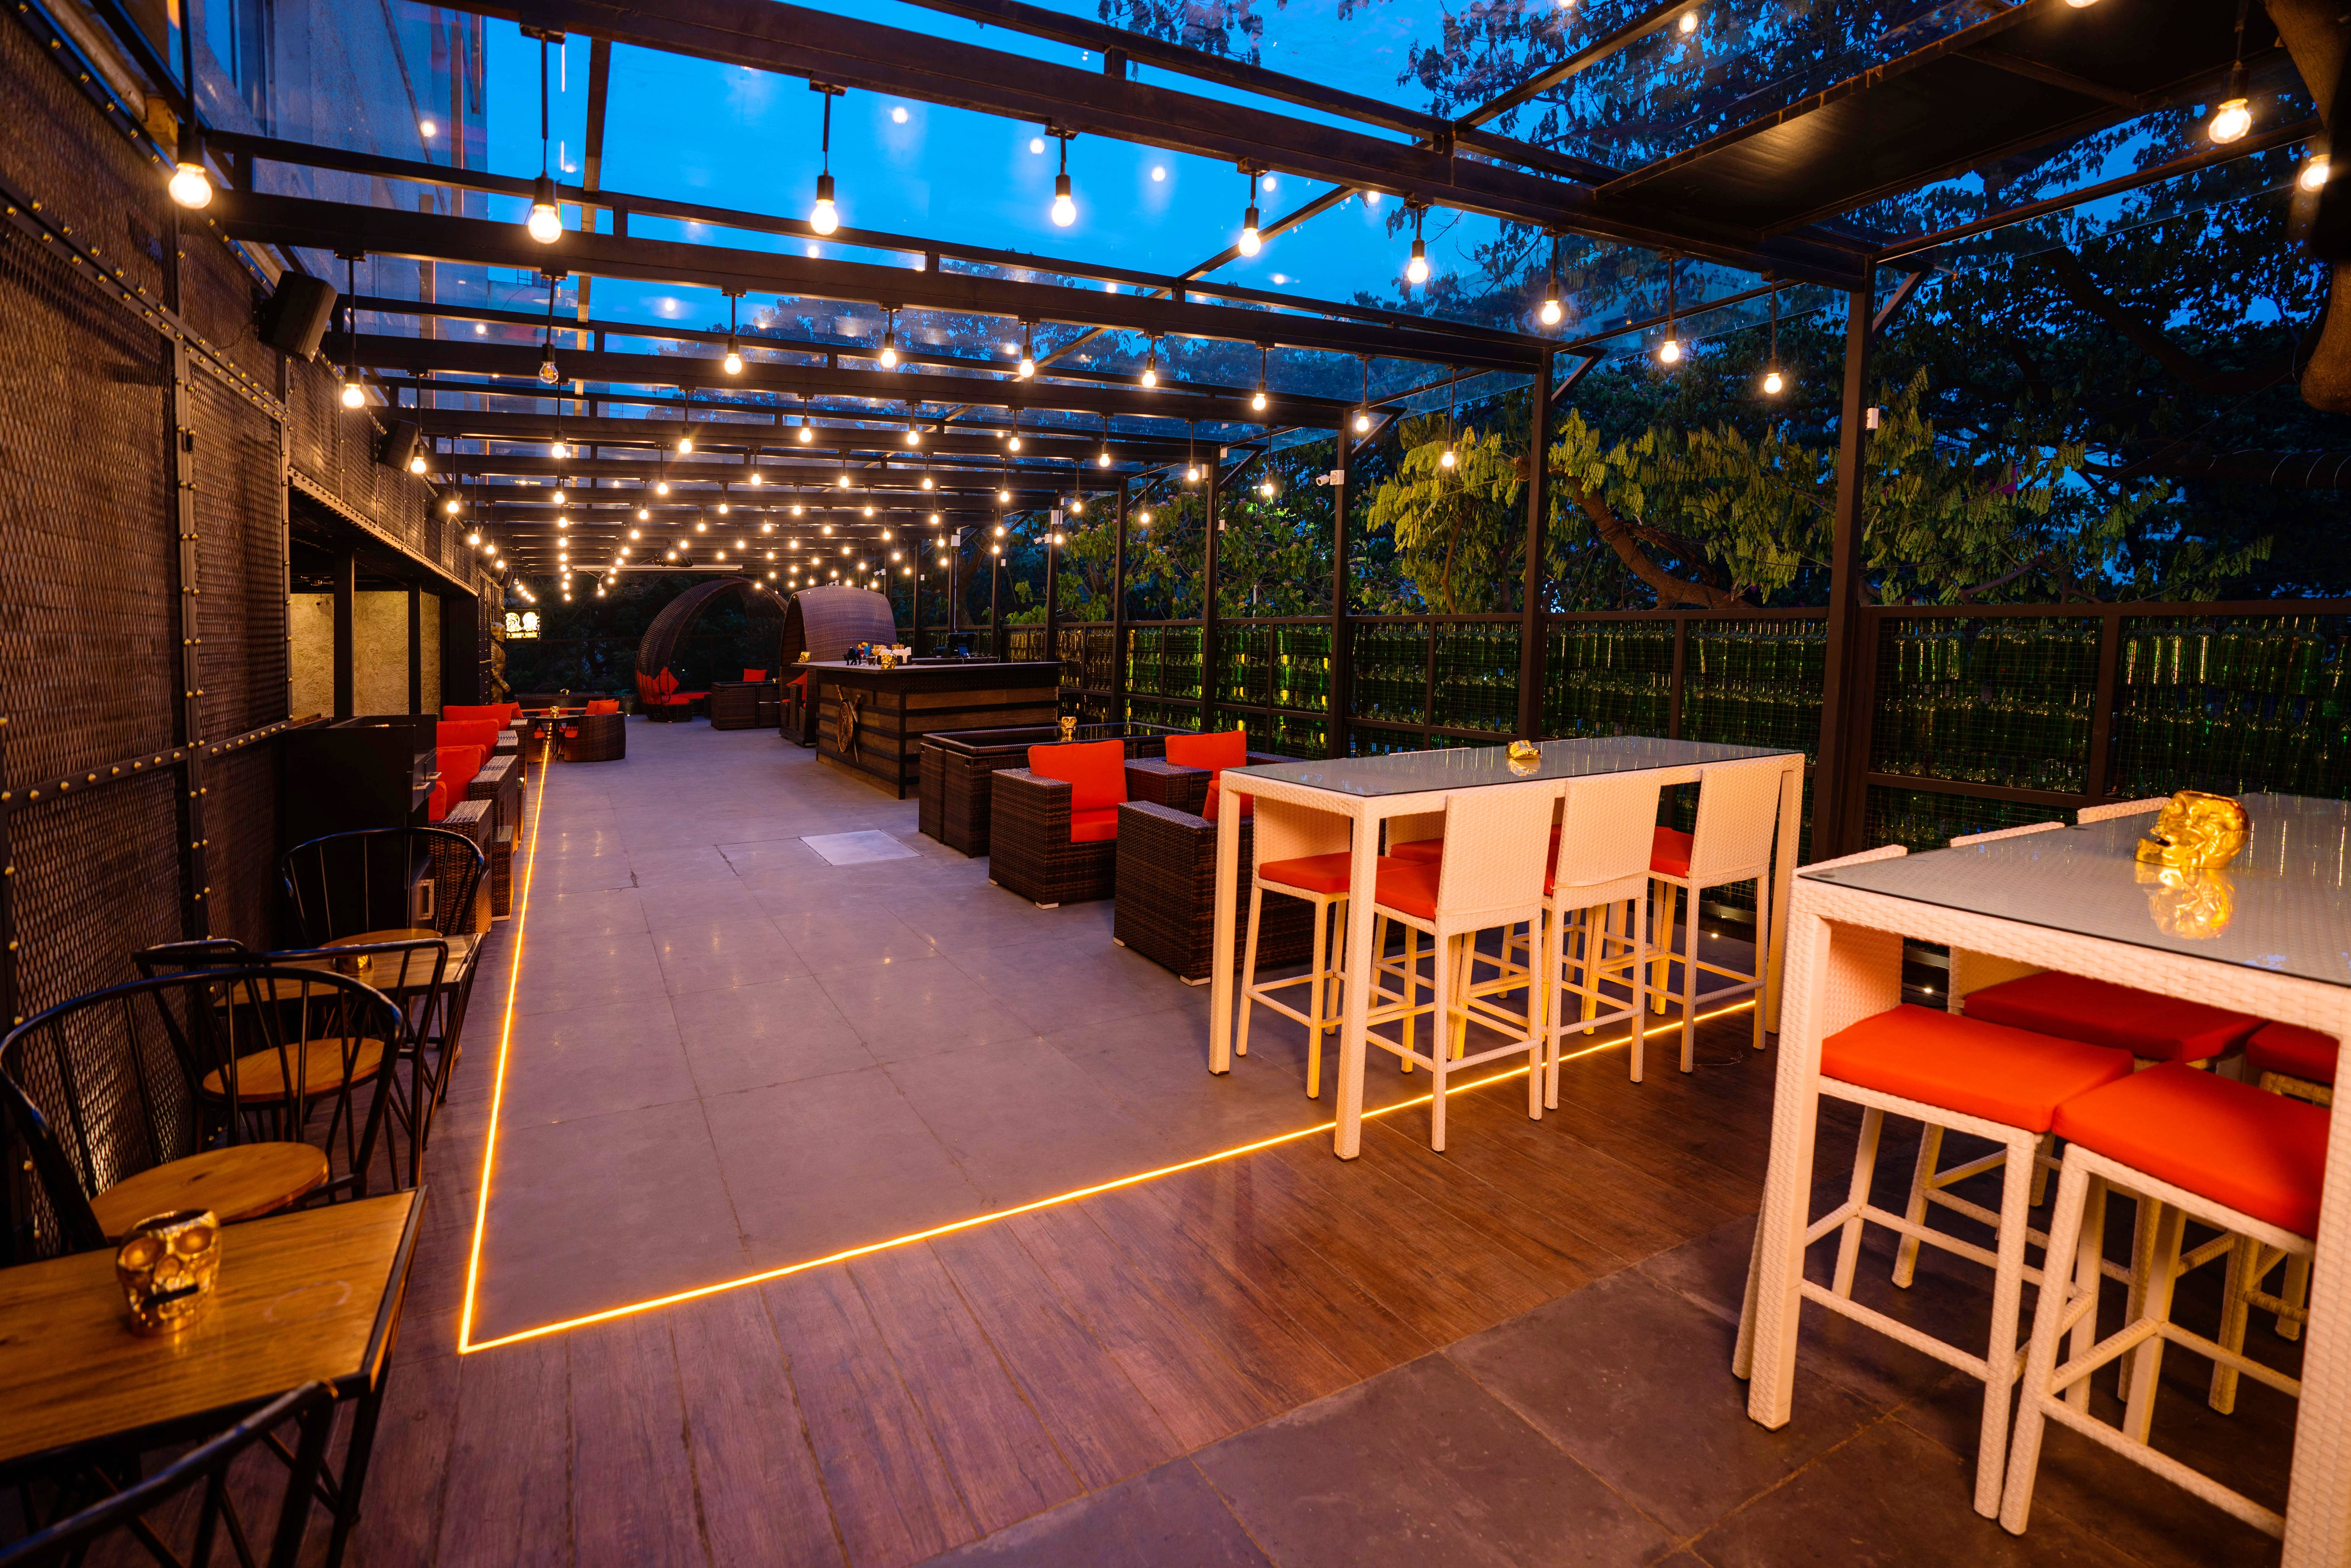 Chill At Lord Of The Drinks Bar Nungambakkam I Lbb Chennai